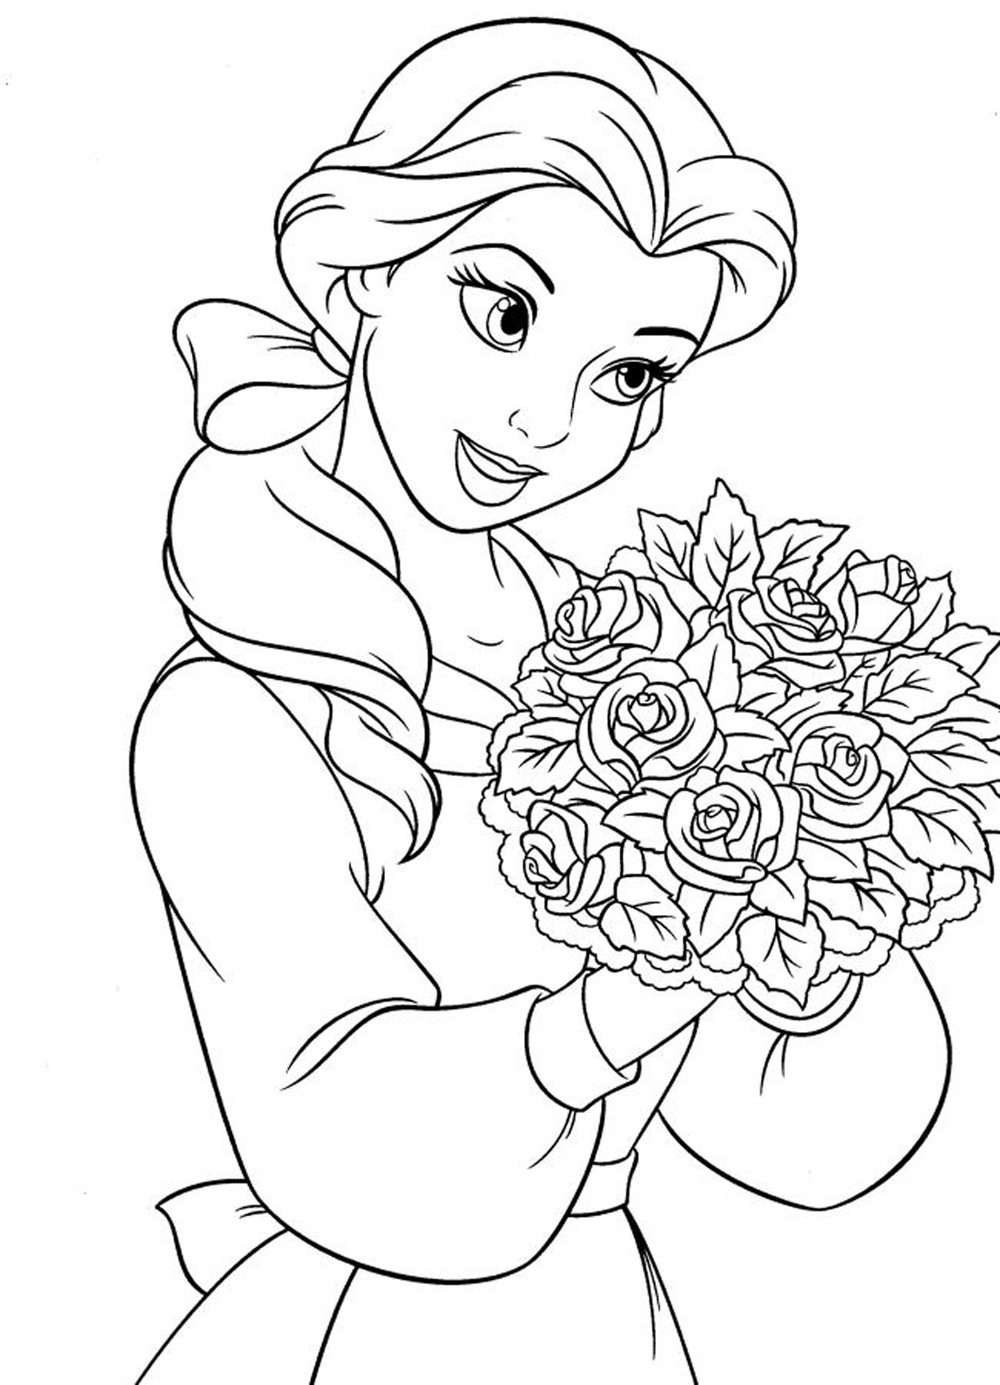 Disney coloring pages to print for free - Disney Princess Tiana Coloring Pages